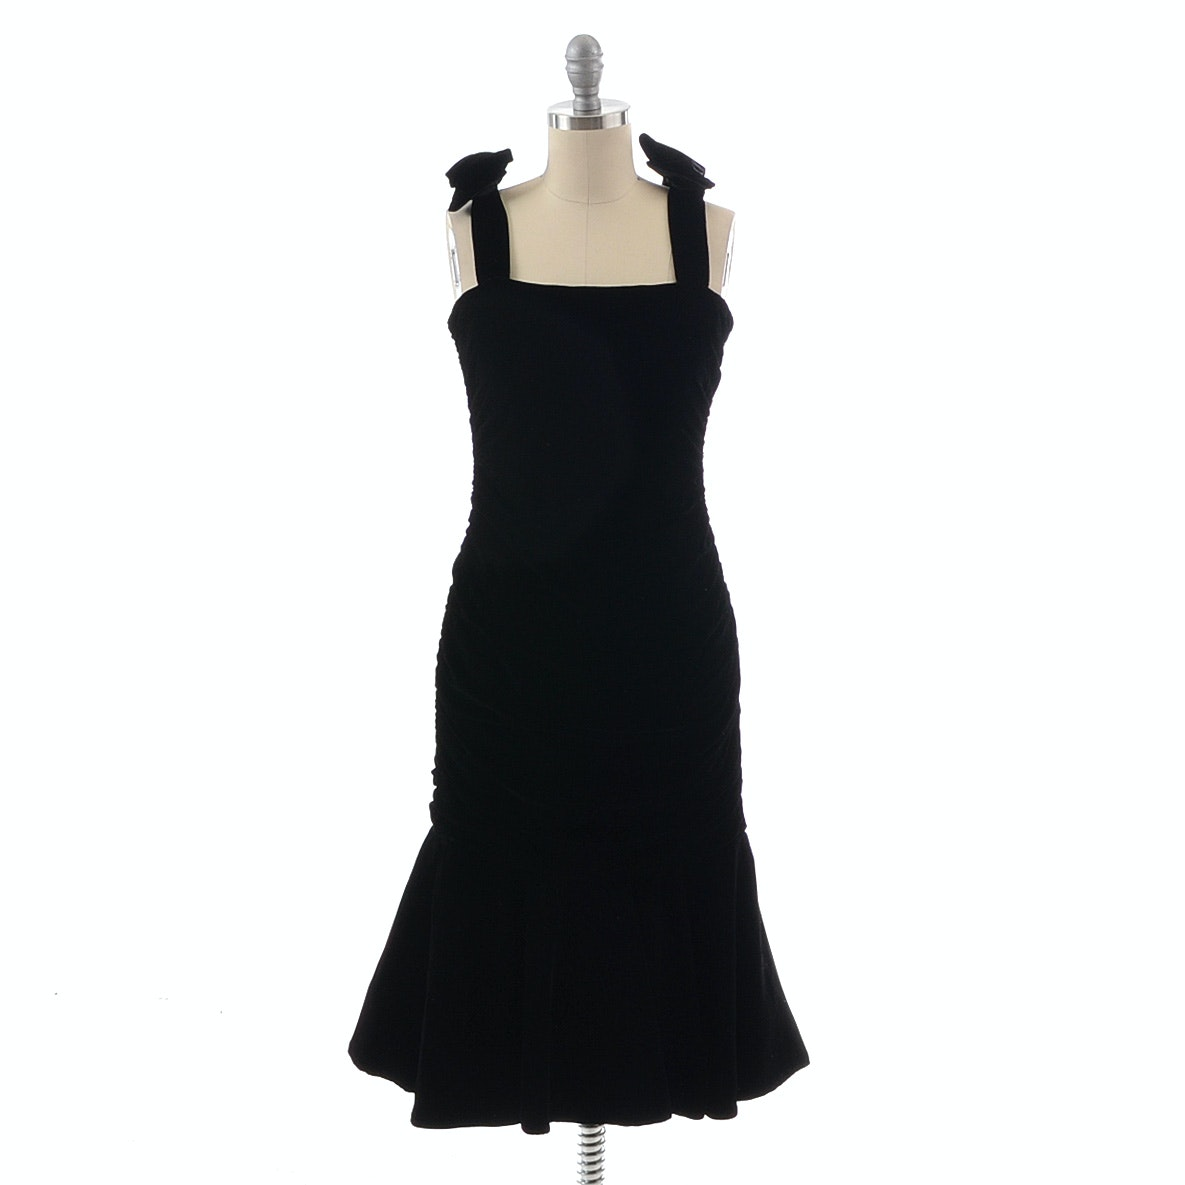 Vintage Black Velvet Ruched Sleeveless Cocktail Dress with Flat Bows at the Shoulder Straps